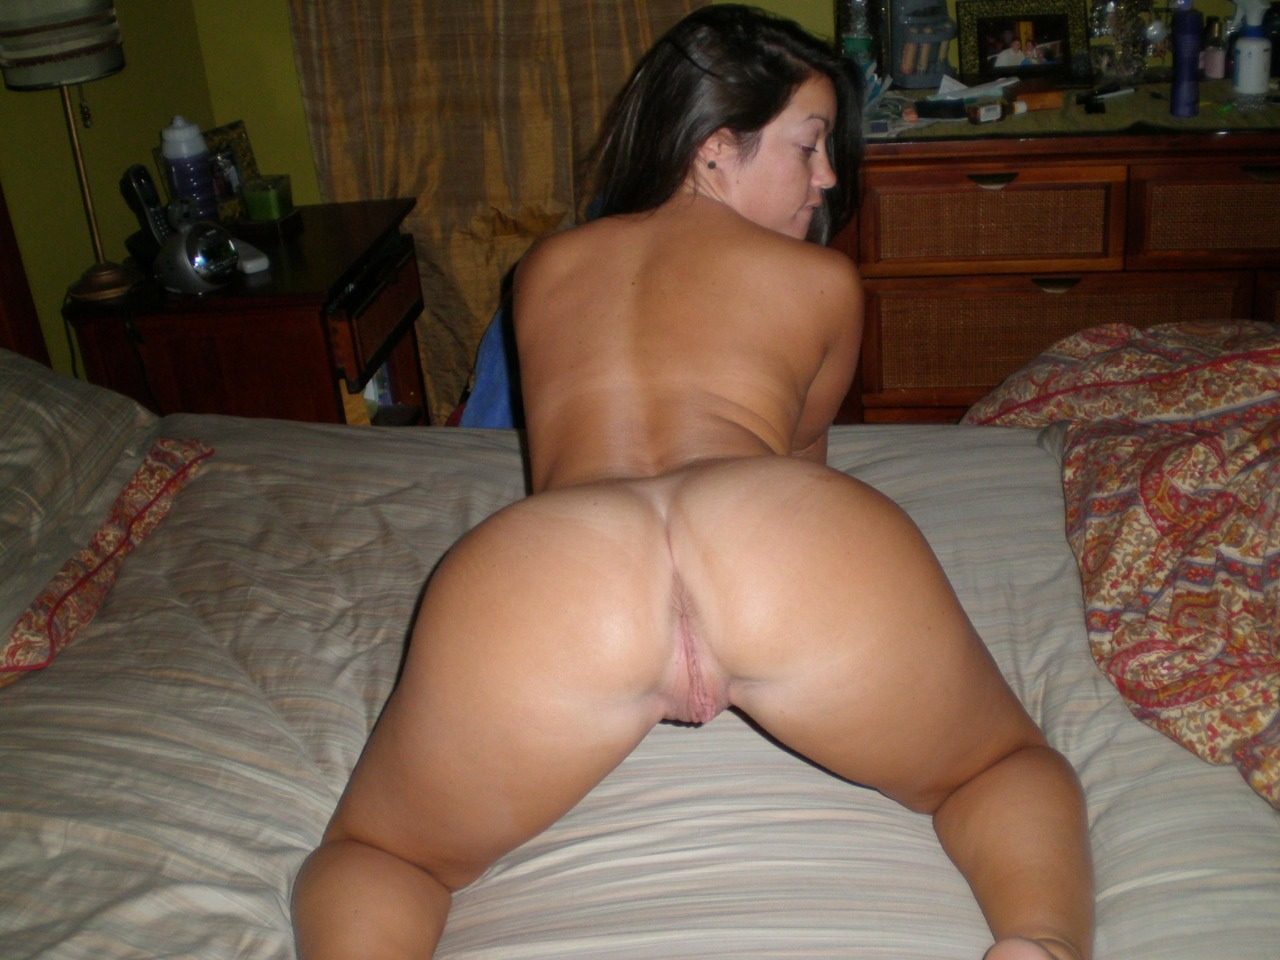 Opinion, interesting nude girls self shots tumblr join